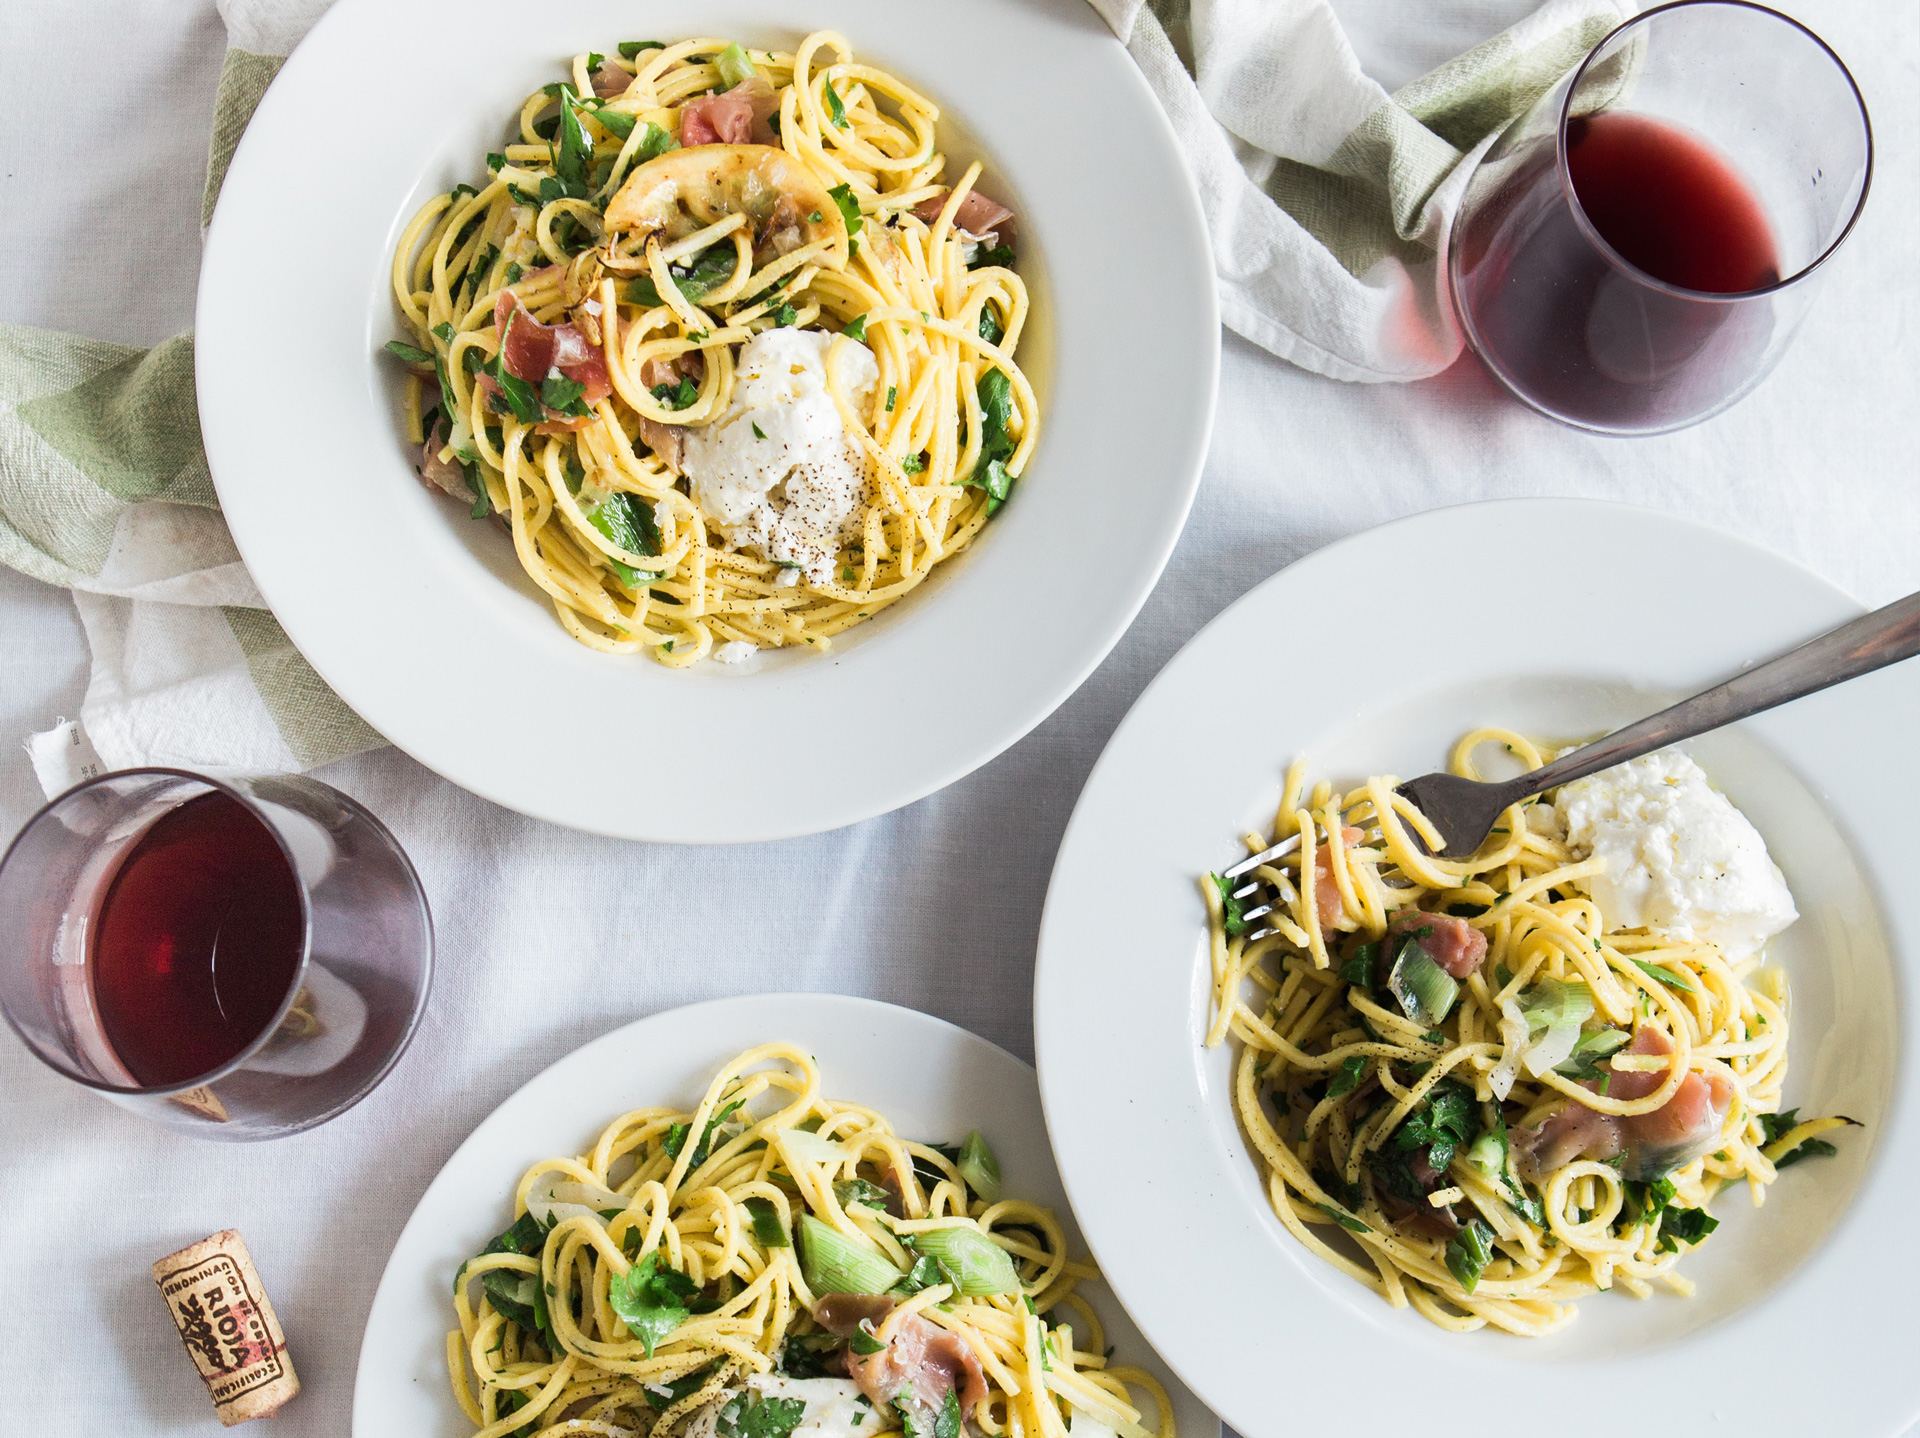 Three plates of a pasta dish on a white table cloth with two glasses of red wine